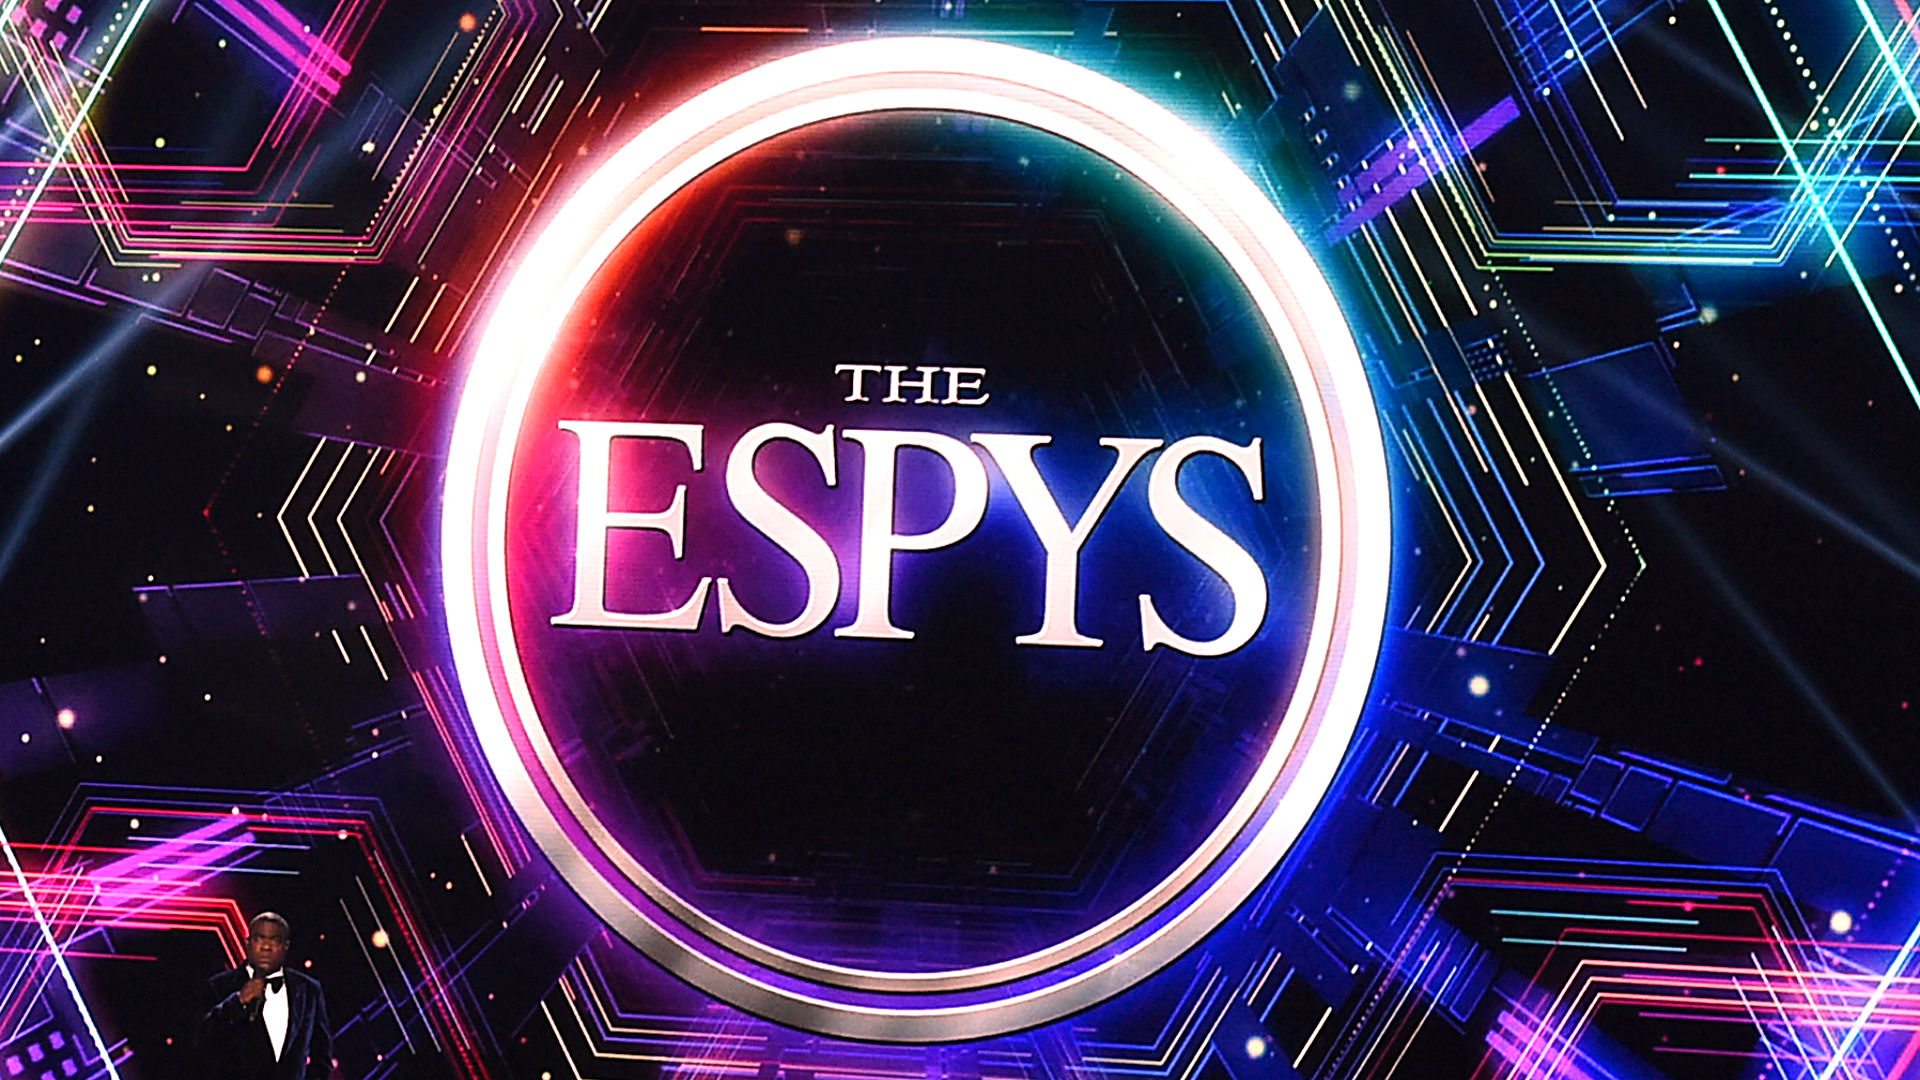 Espy Award Winners 2020 Full Results Highlights Best Moments From The Espys Sporting News